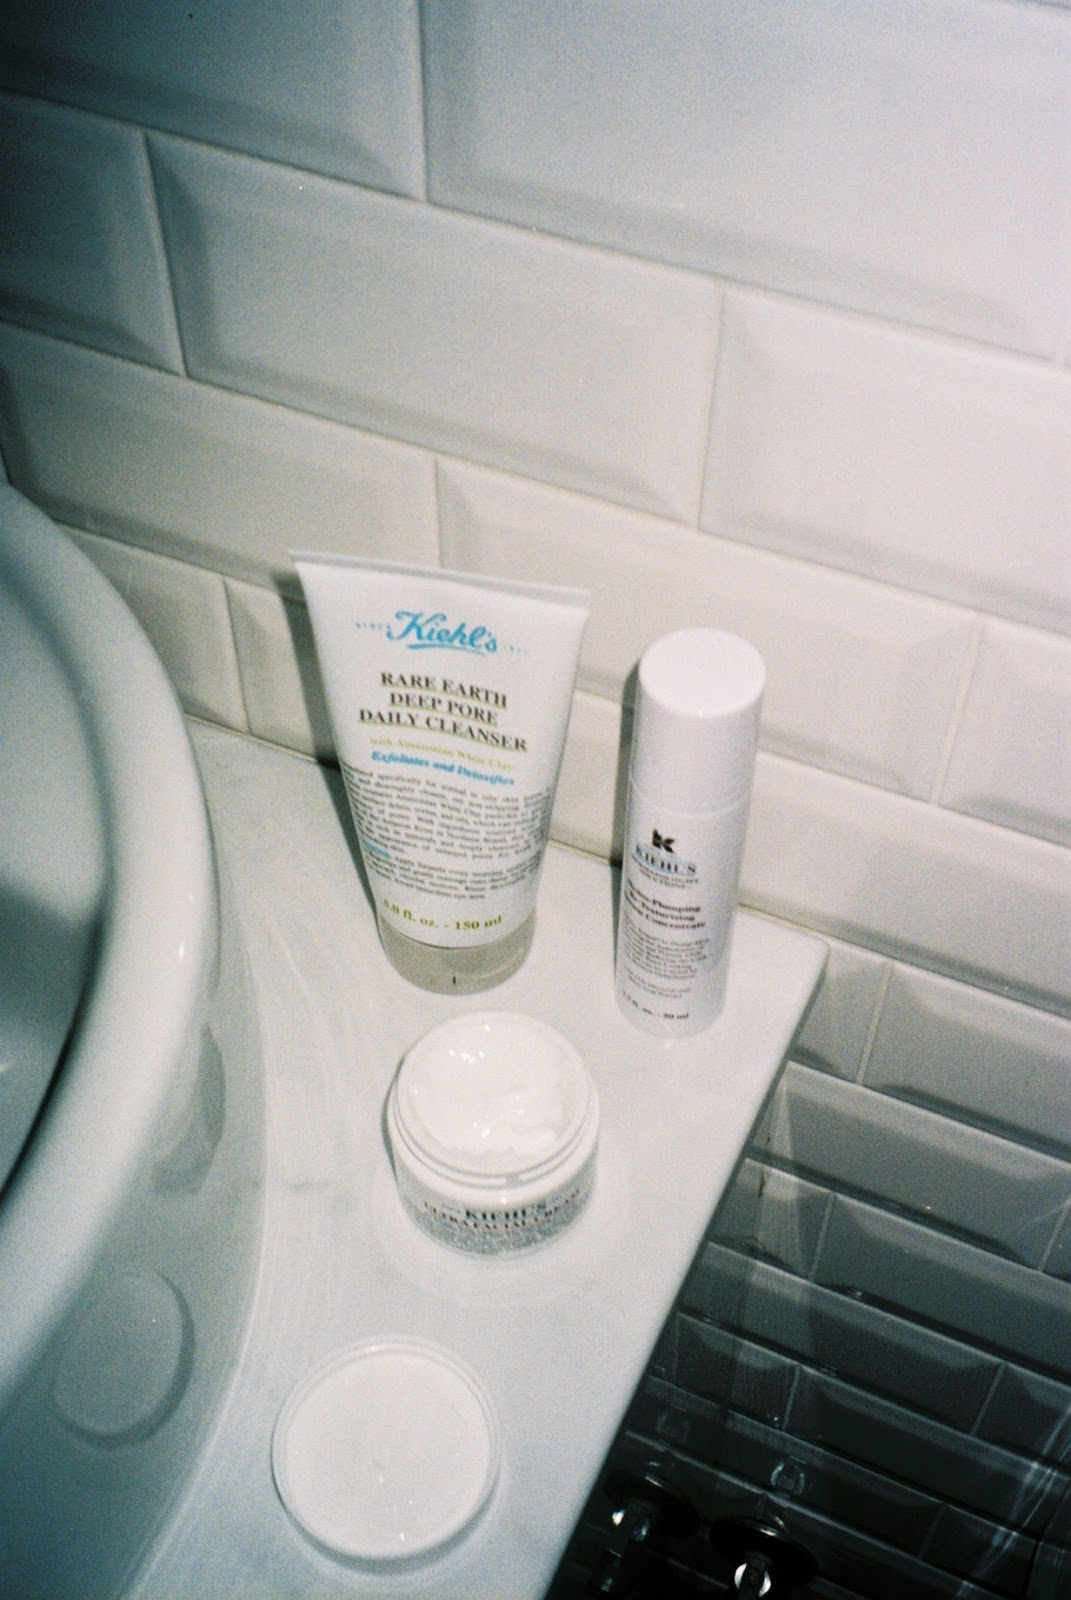 My Current Skincare Routine W/ Kiehl's